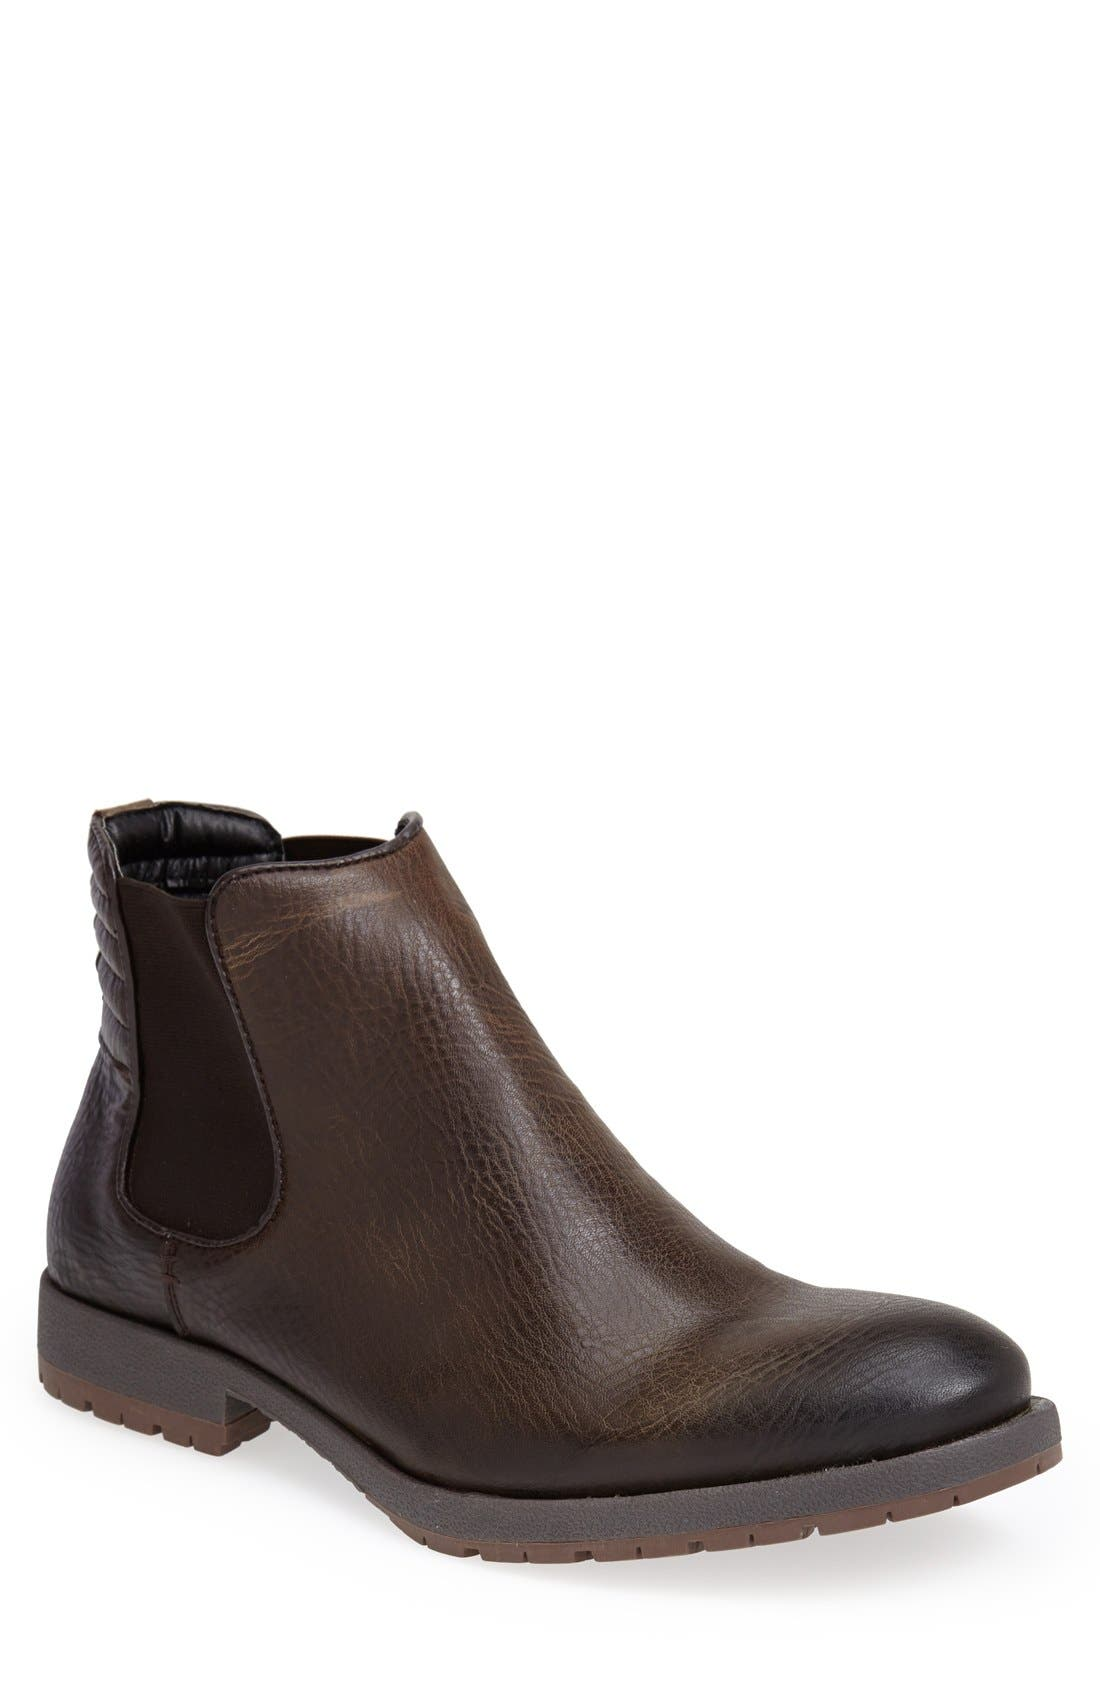 'Lazo' Chelsea Boot,                             Main thumbnail 1, color,                             207